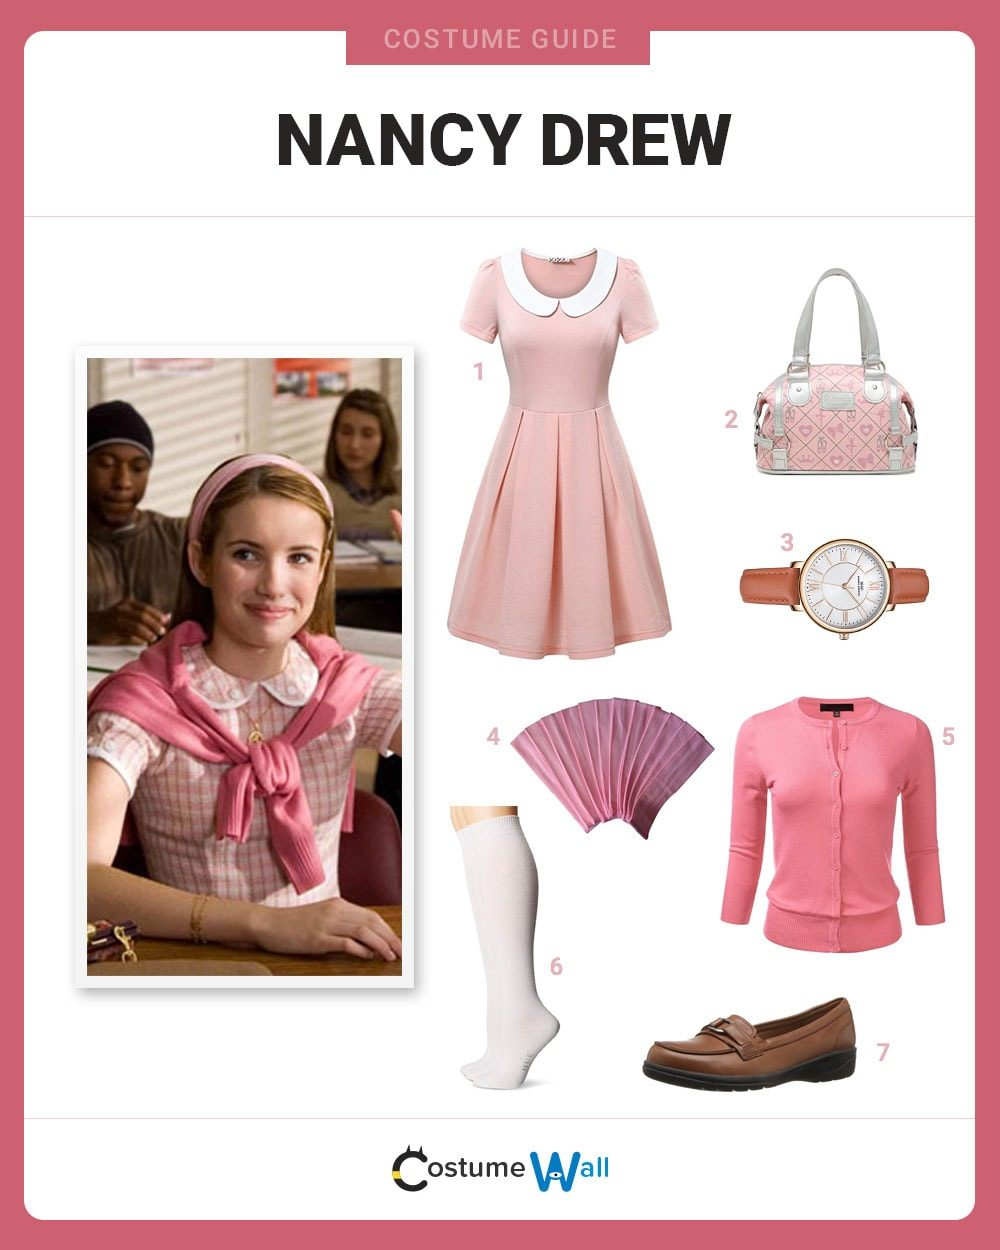 Nancy Drew Costume Guide